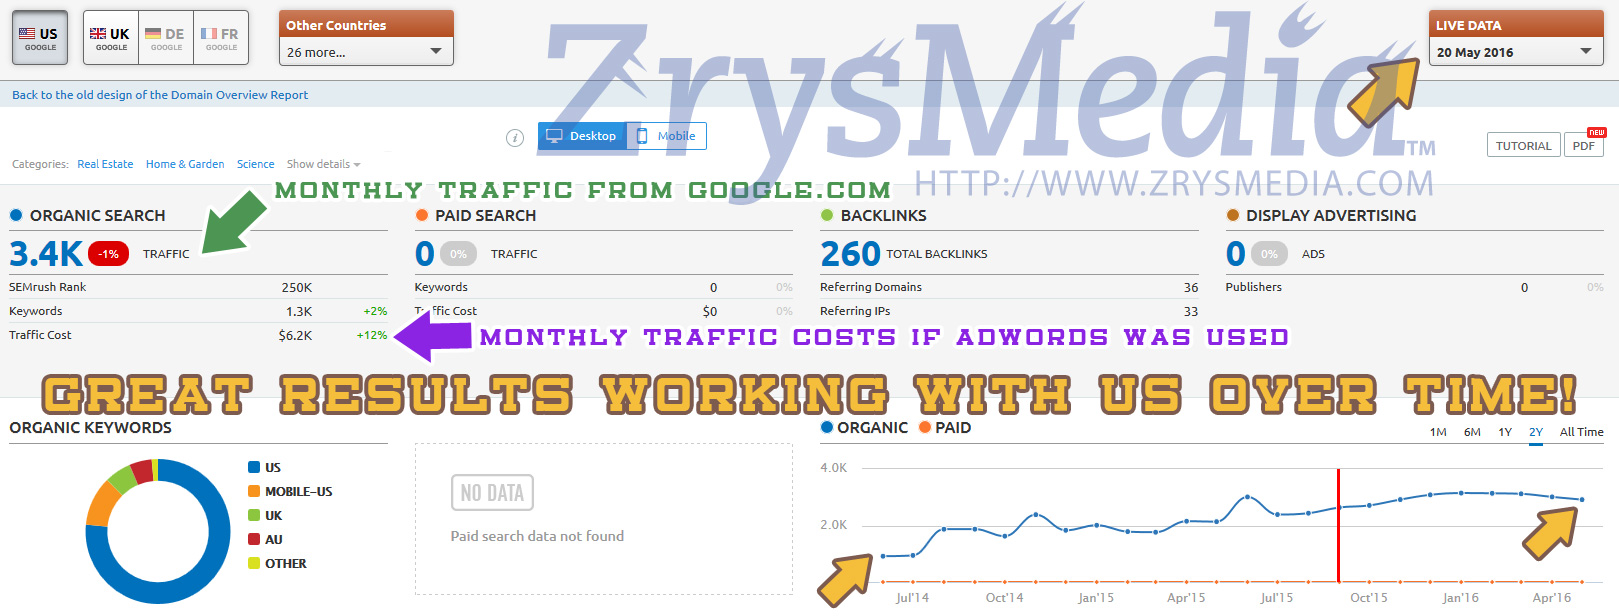 RE/MAX Real Estate Companies Traffic Today due to ZrysMedia Real Estate SEO